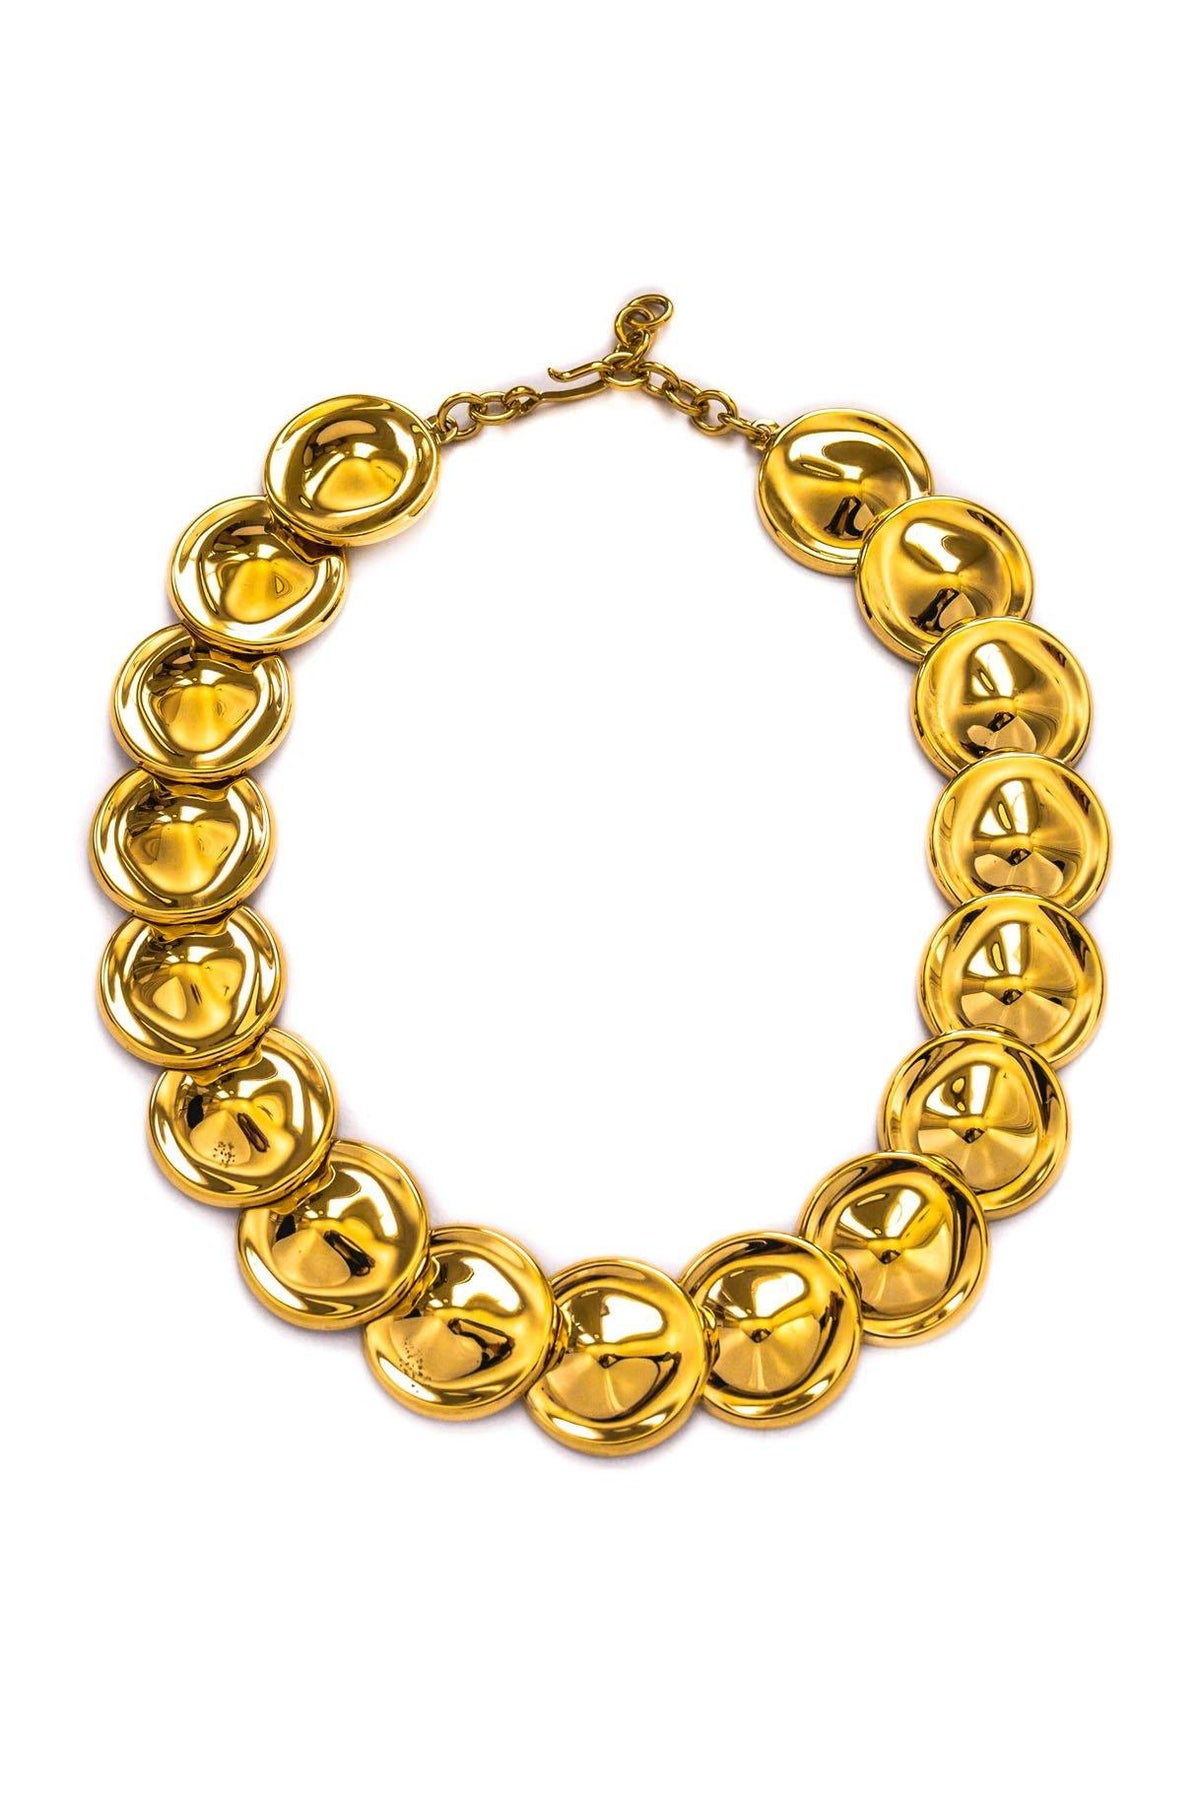 Vintage Jumbo Discs Necklace from Sweet and Sparj